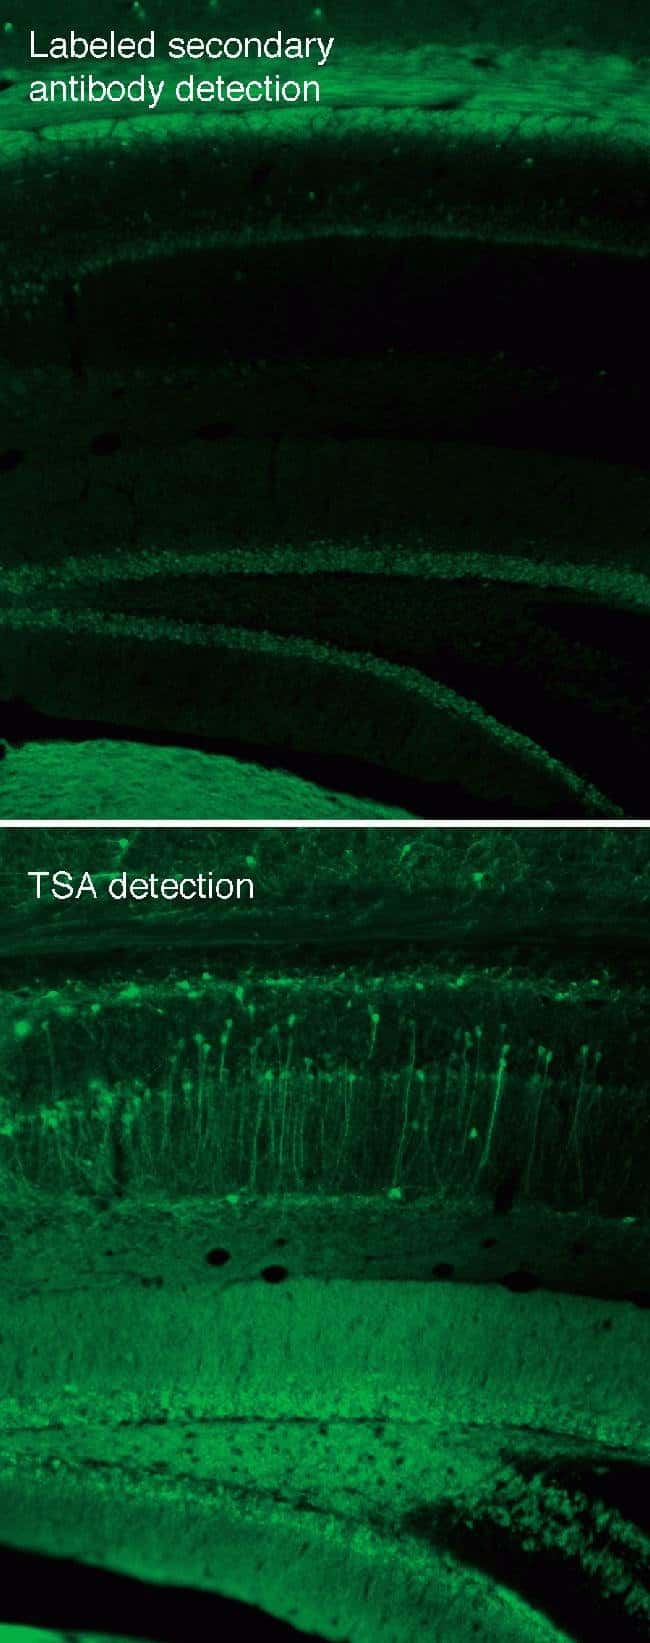 Tyramide signal amplification of immunofluorescent staining in mouse brain sections.